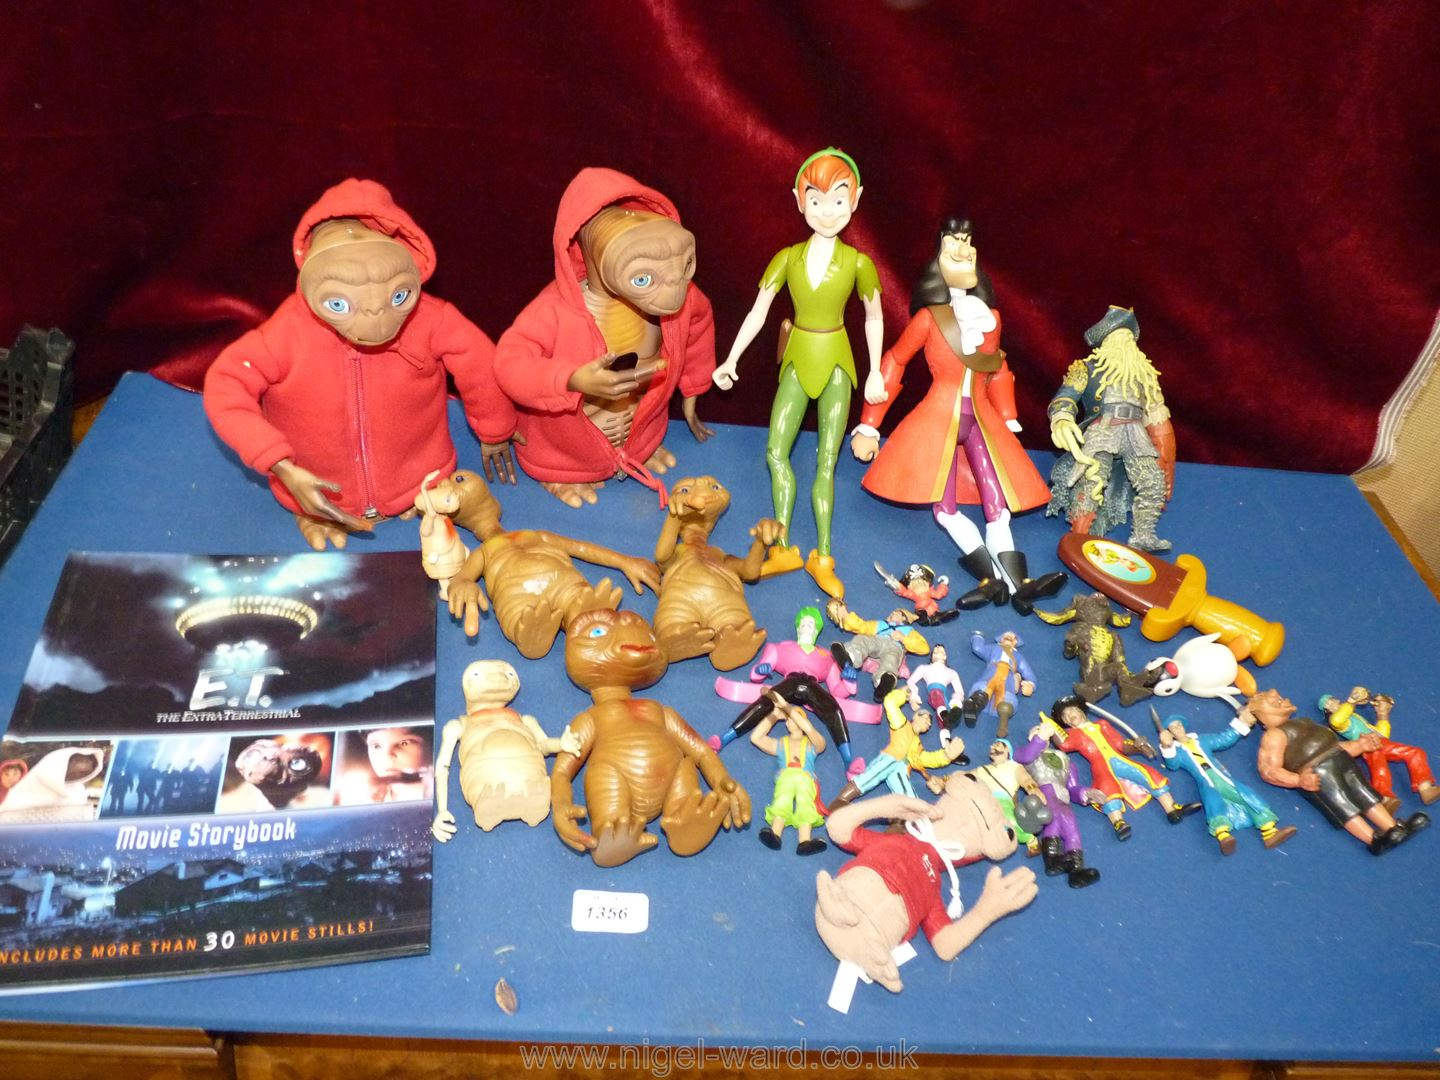 A box of characters from animated films including ET, Peter Pan and Captain Hook (x2).